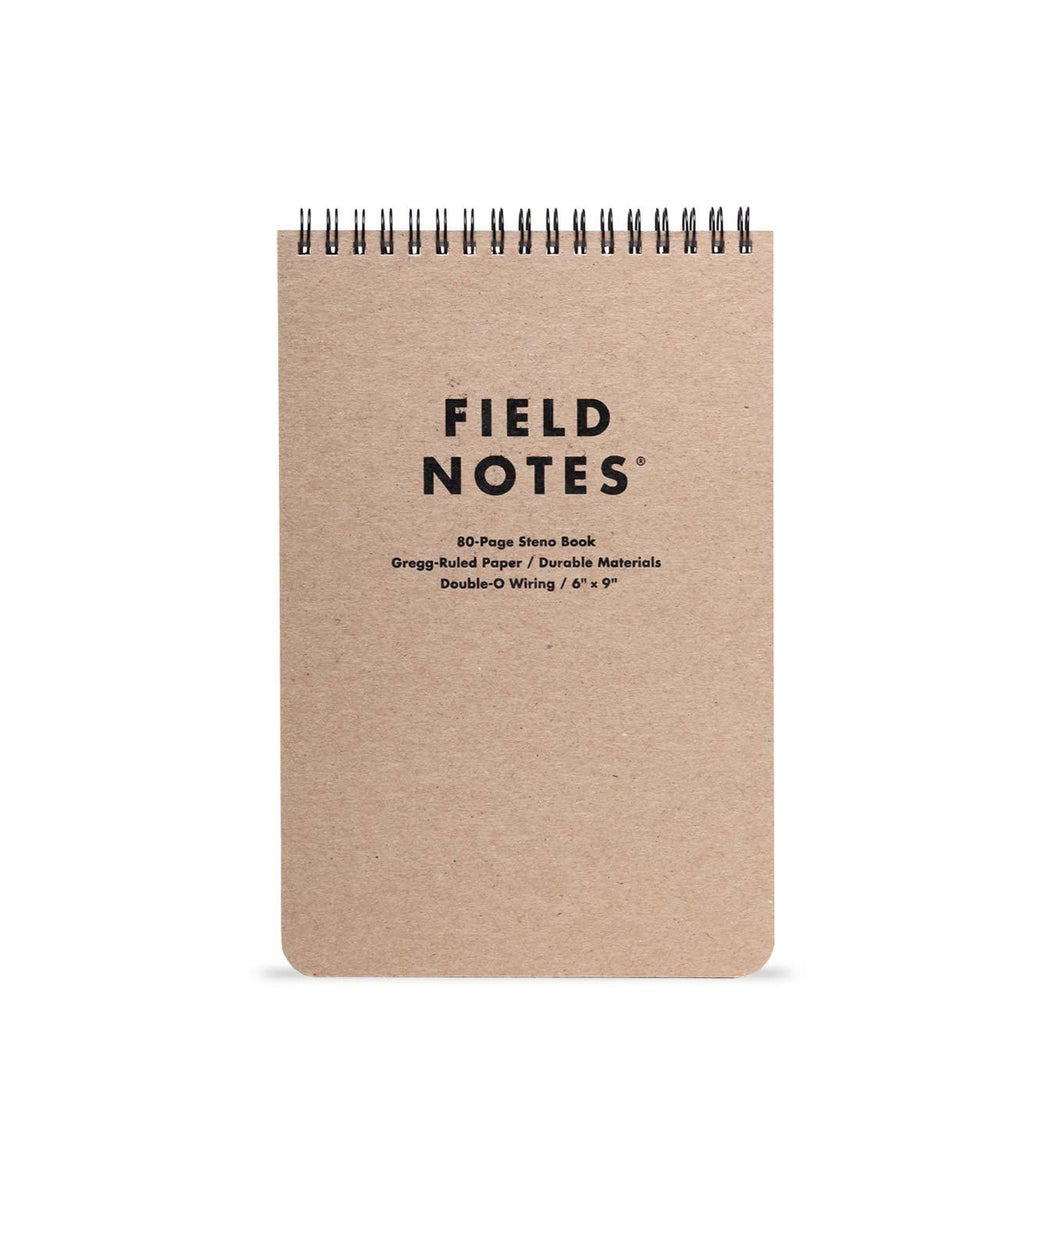 Field Notes Steno Pad with ruled paper.